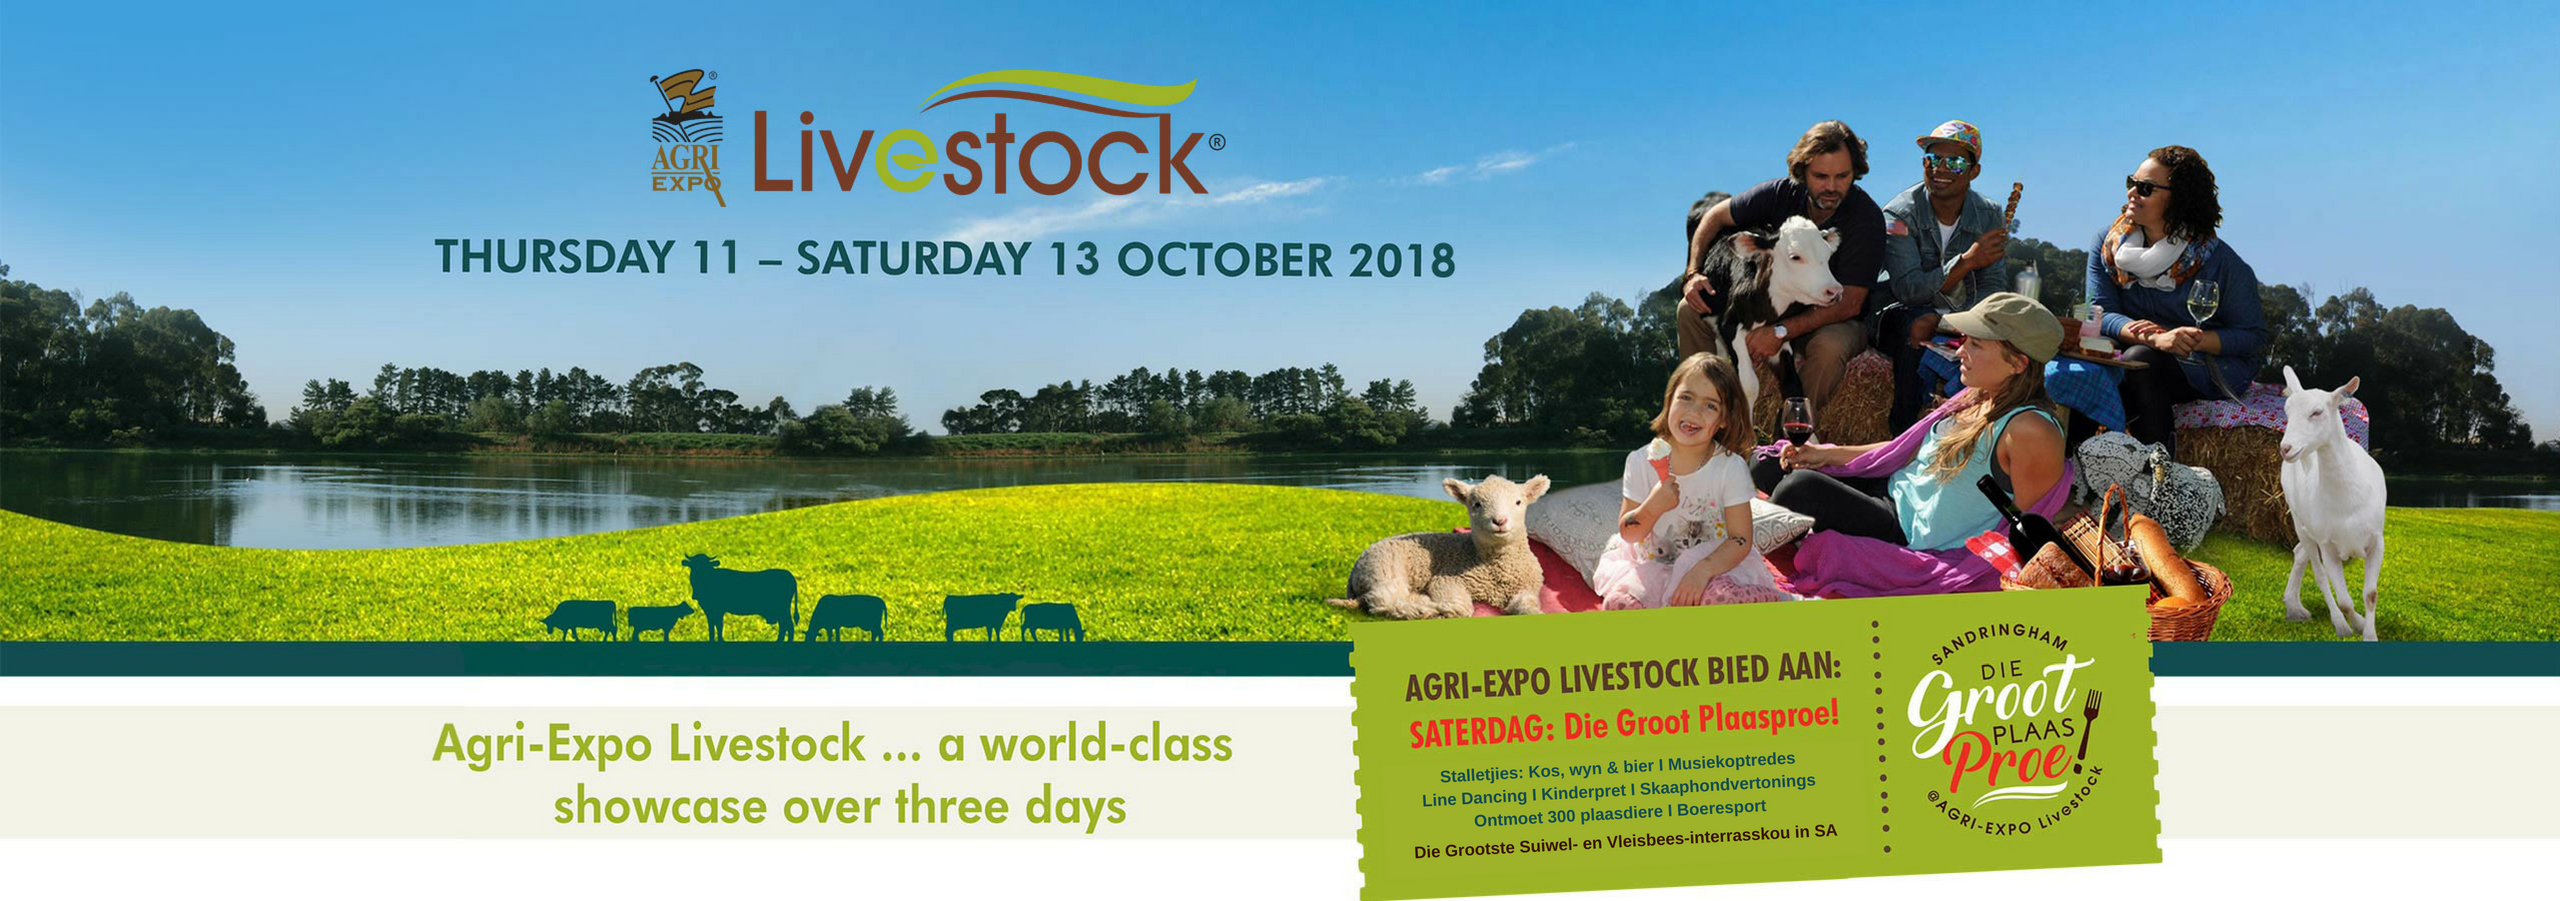 Agri-Expo Livestock web banner updated